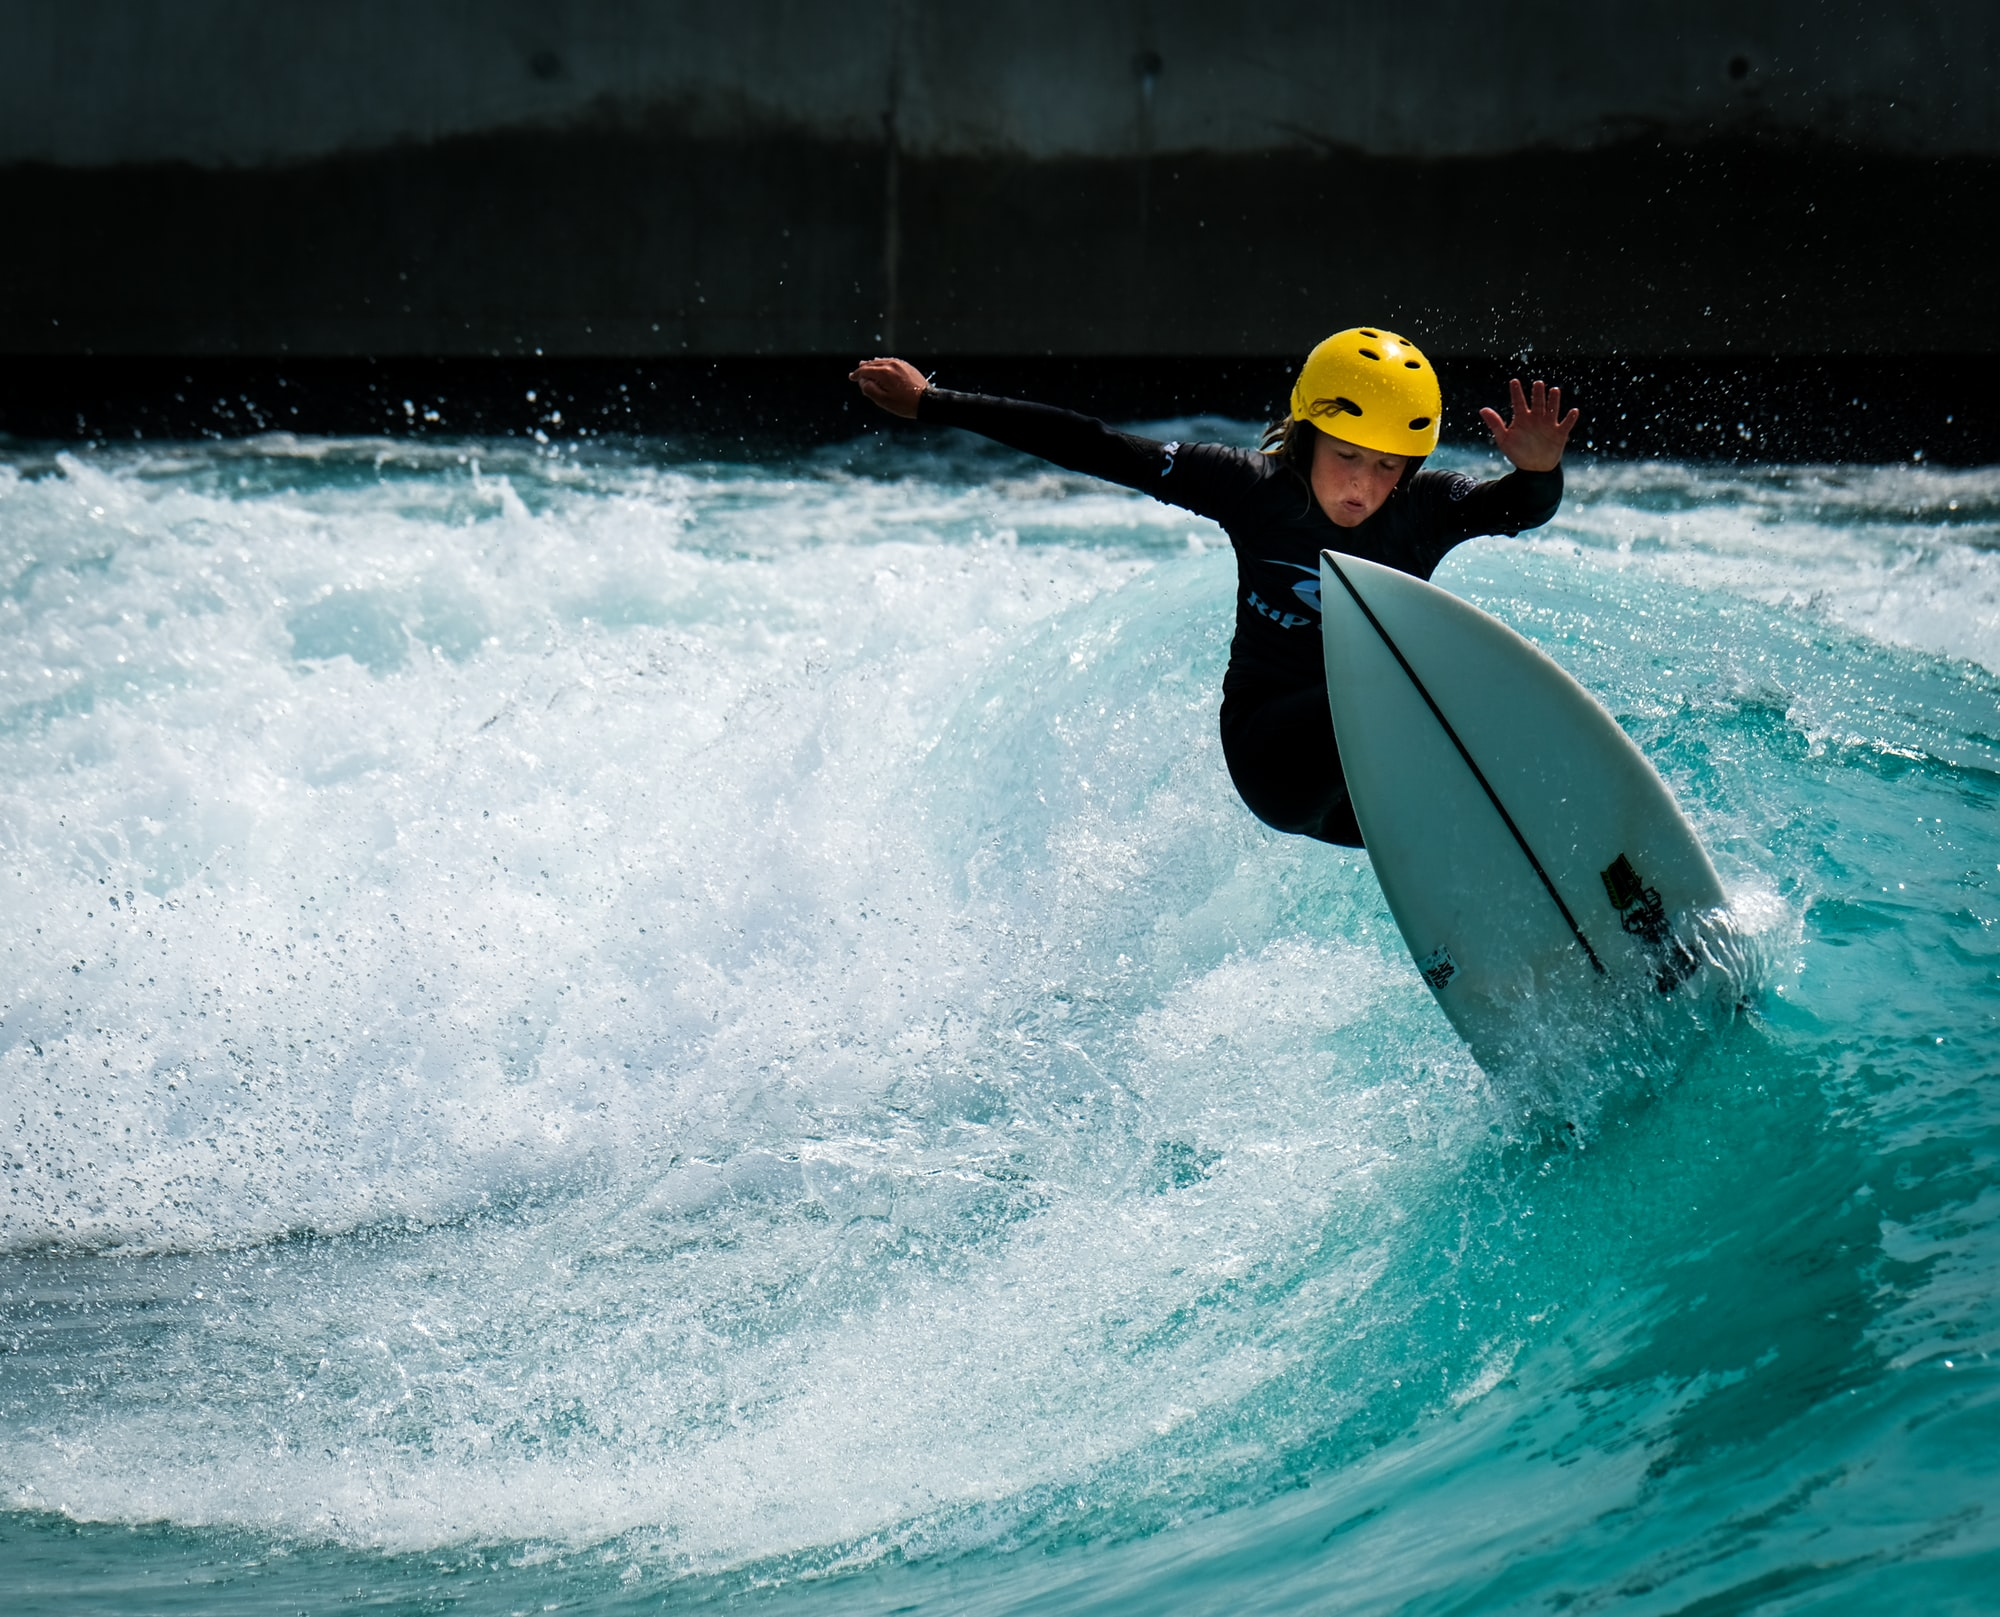 Photo of grom boy kid surfer, surfing the surf in Bristol at The Wave wavepool.